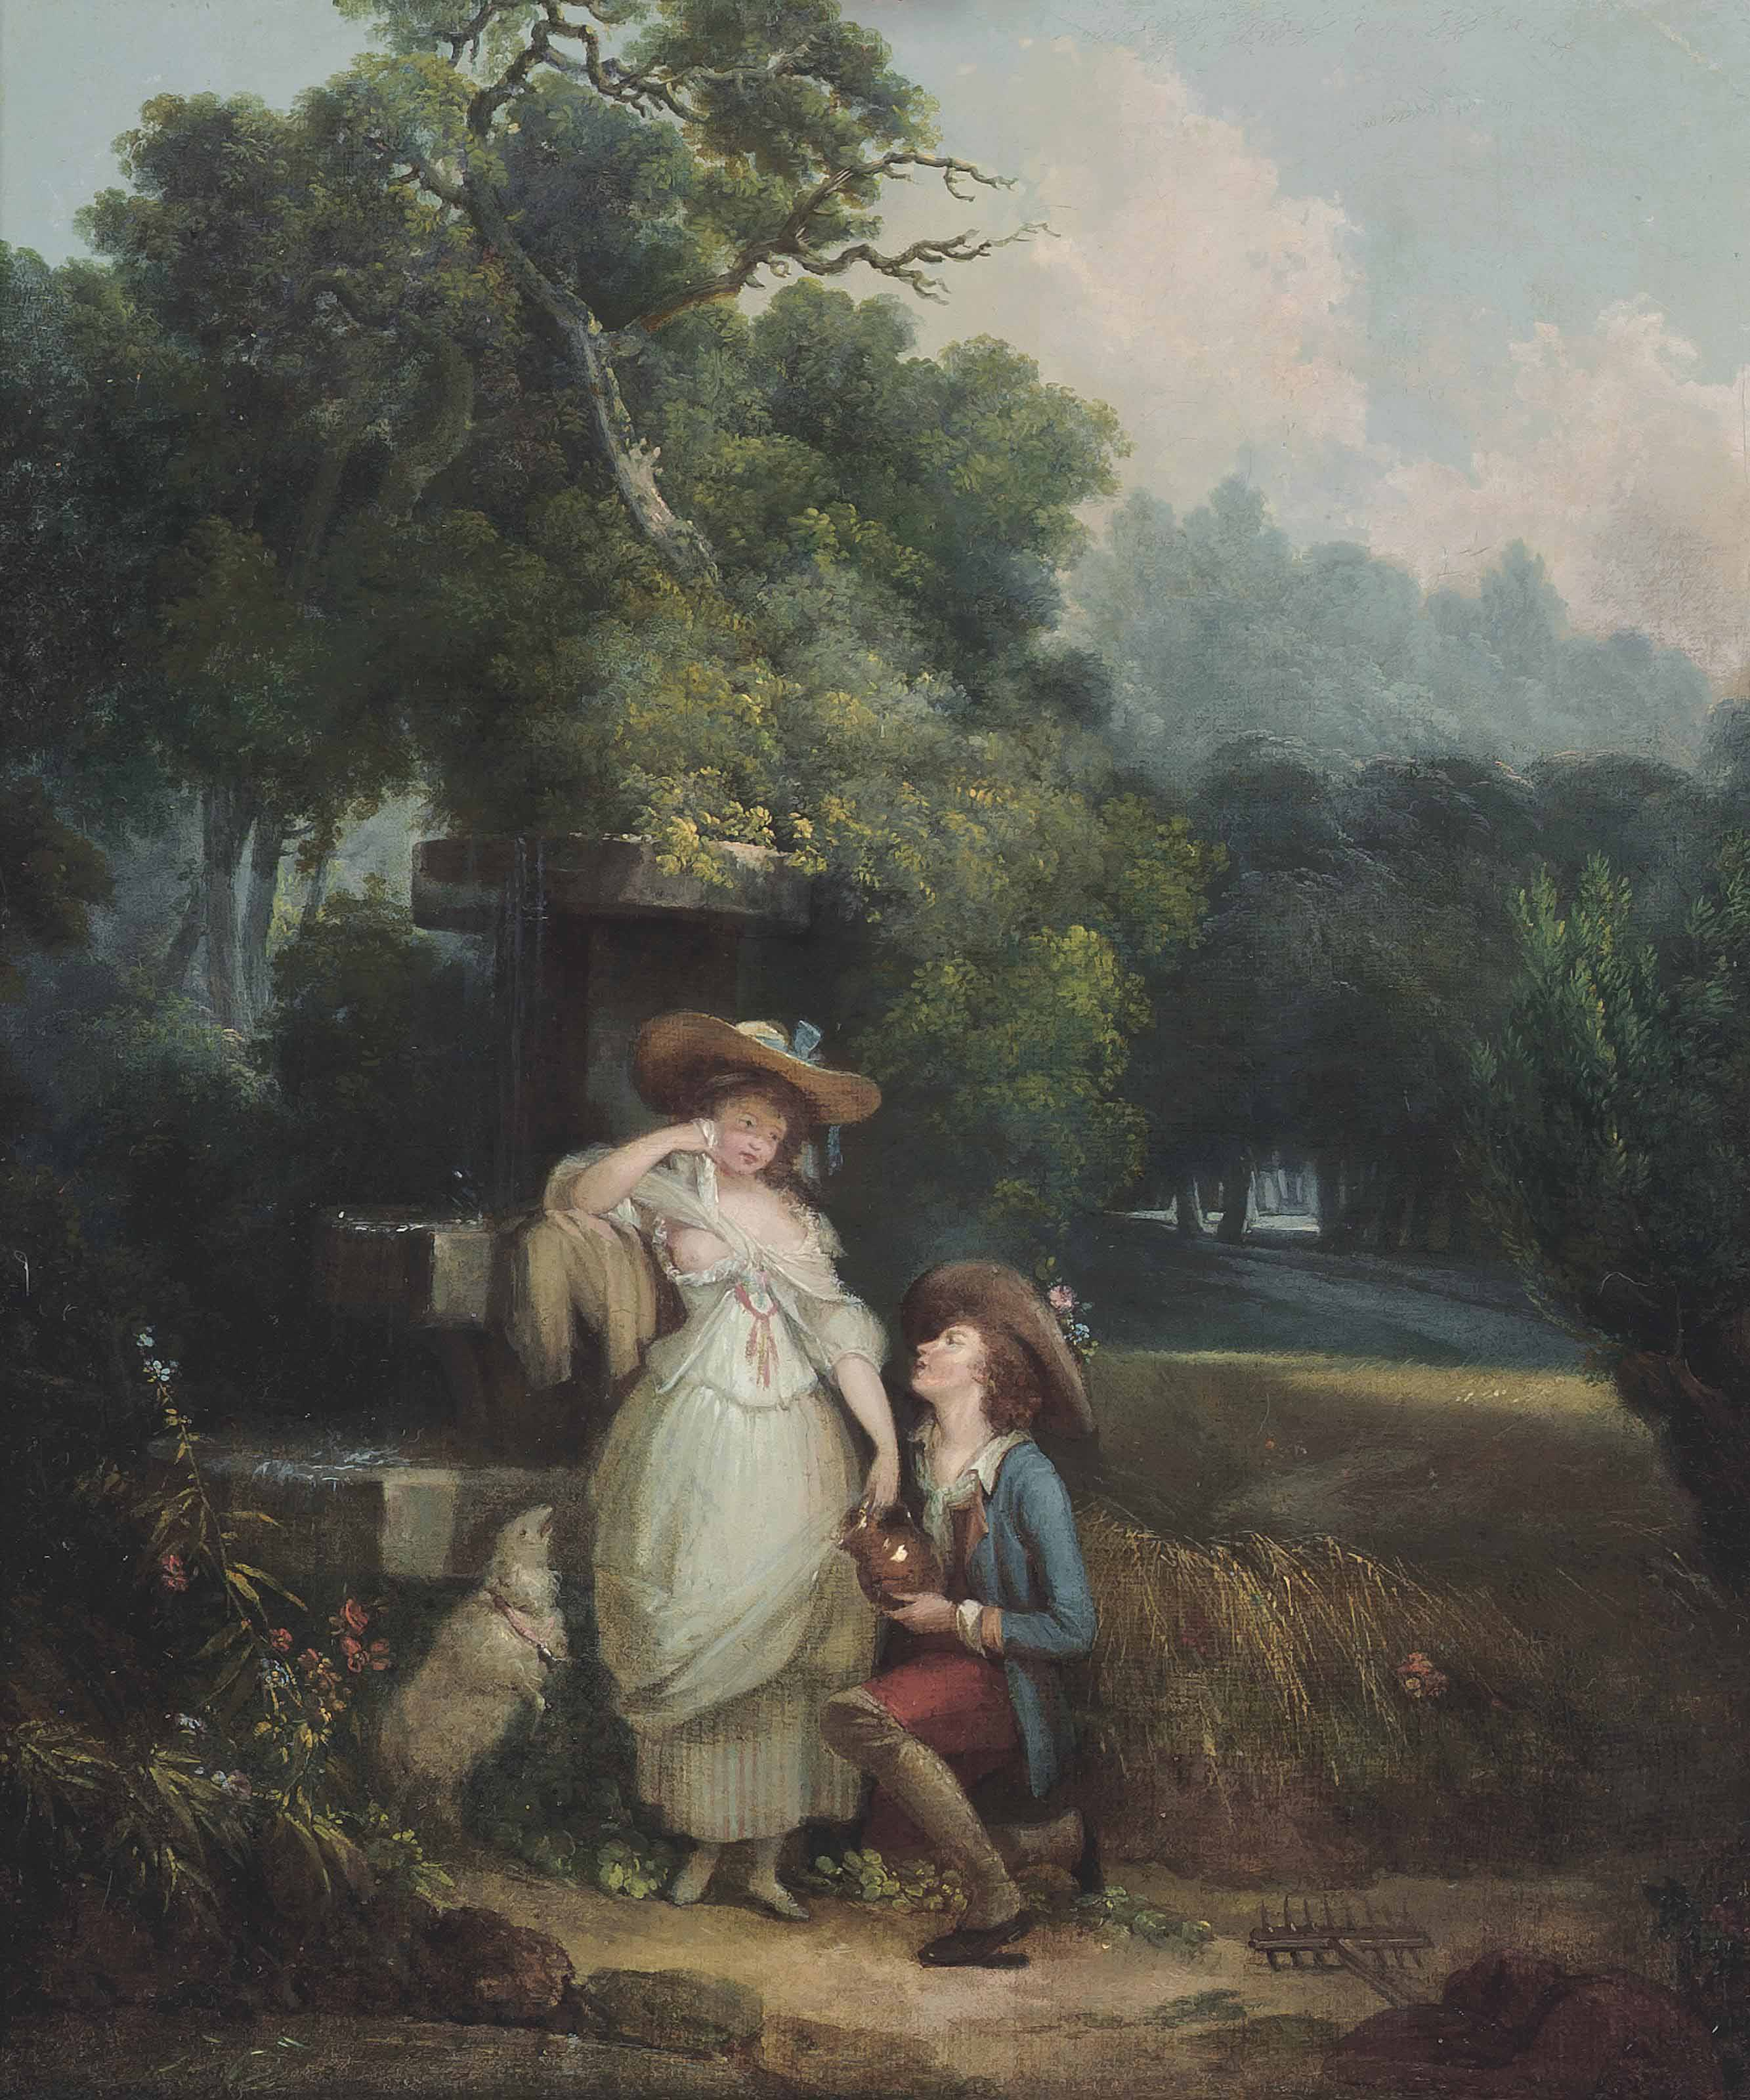 A shepherd courting a shepherdess by a fountain, with a sheep, in a wooded landscape